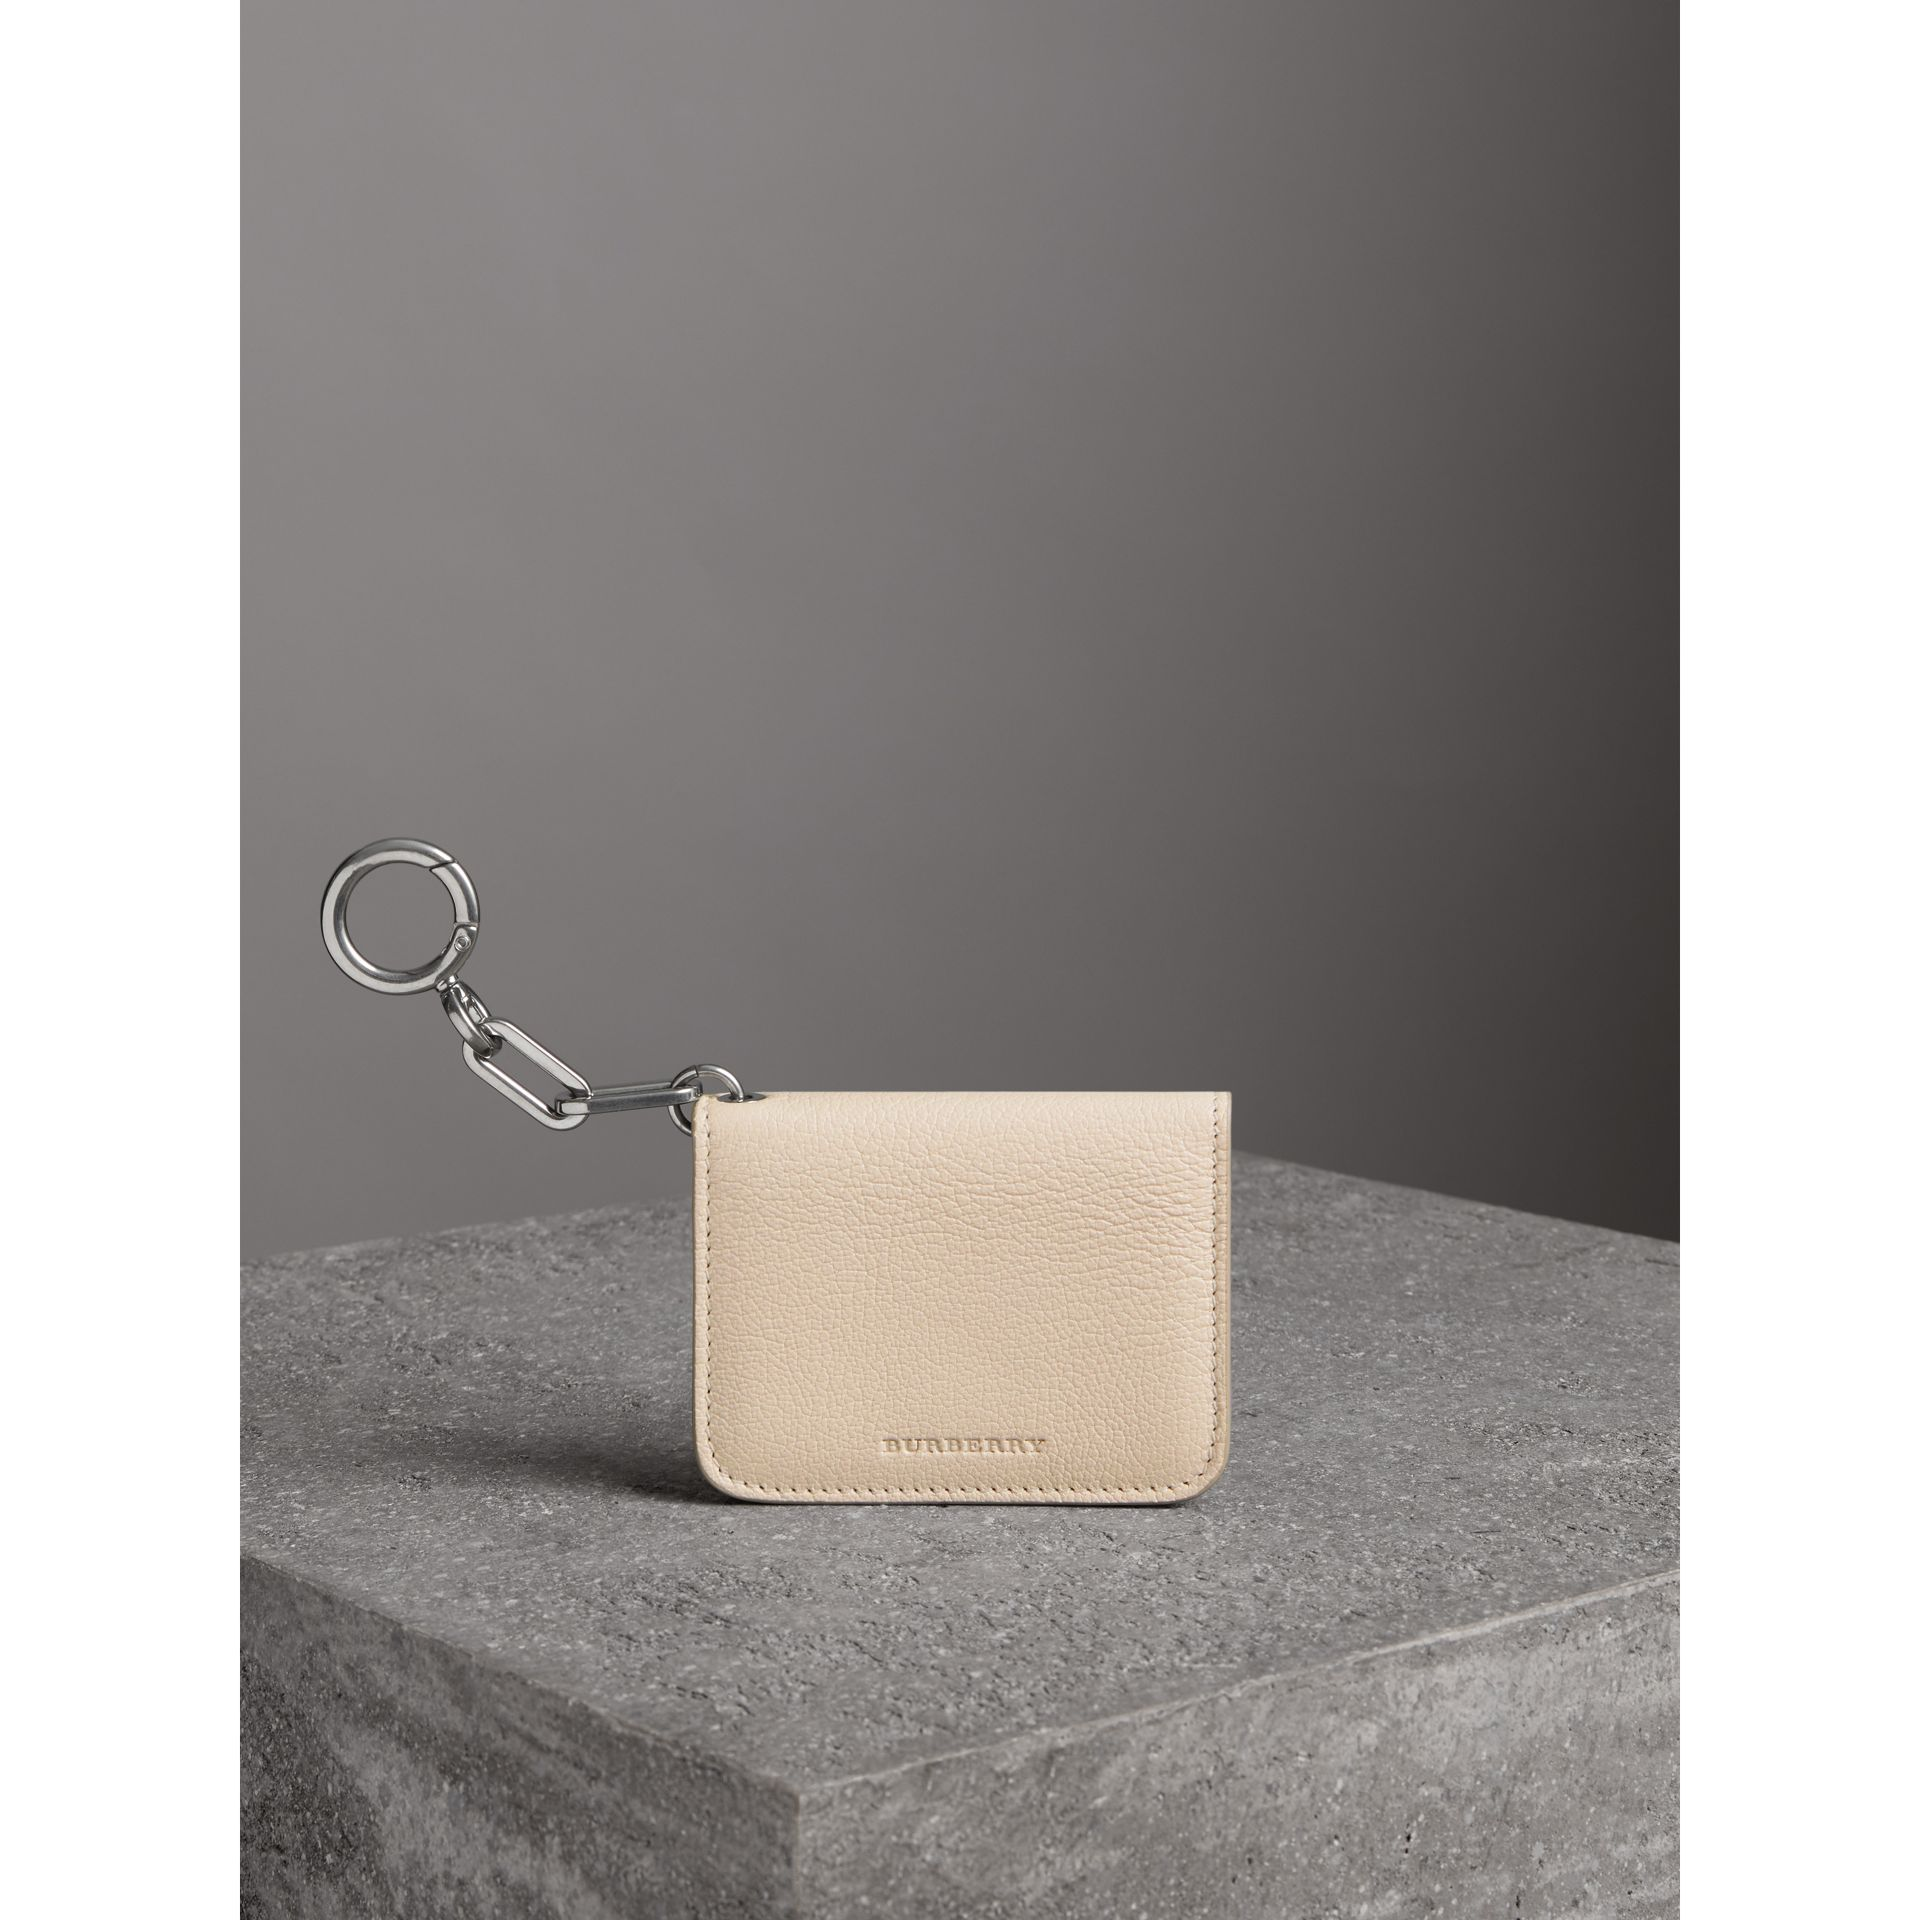 Link Detail Leather ID Card Case Charm in Stone | Burberry - gallery image 4